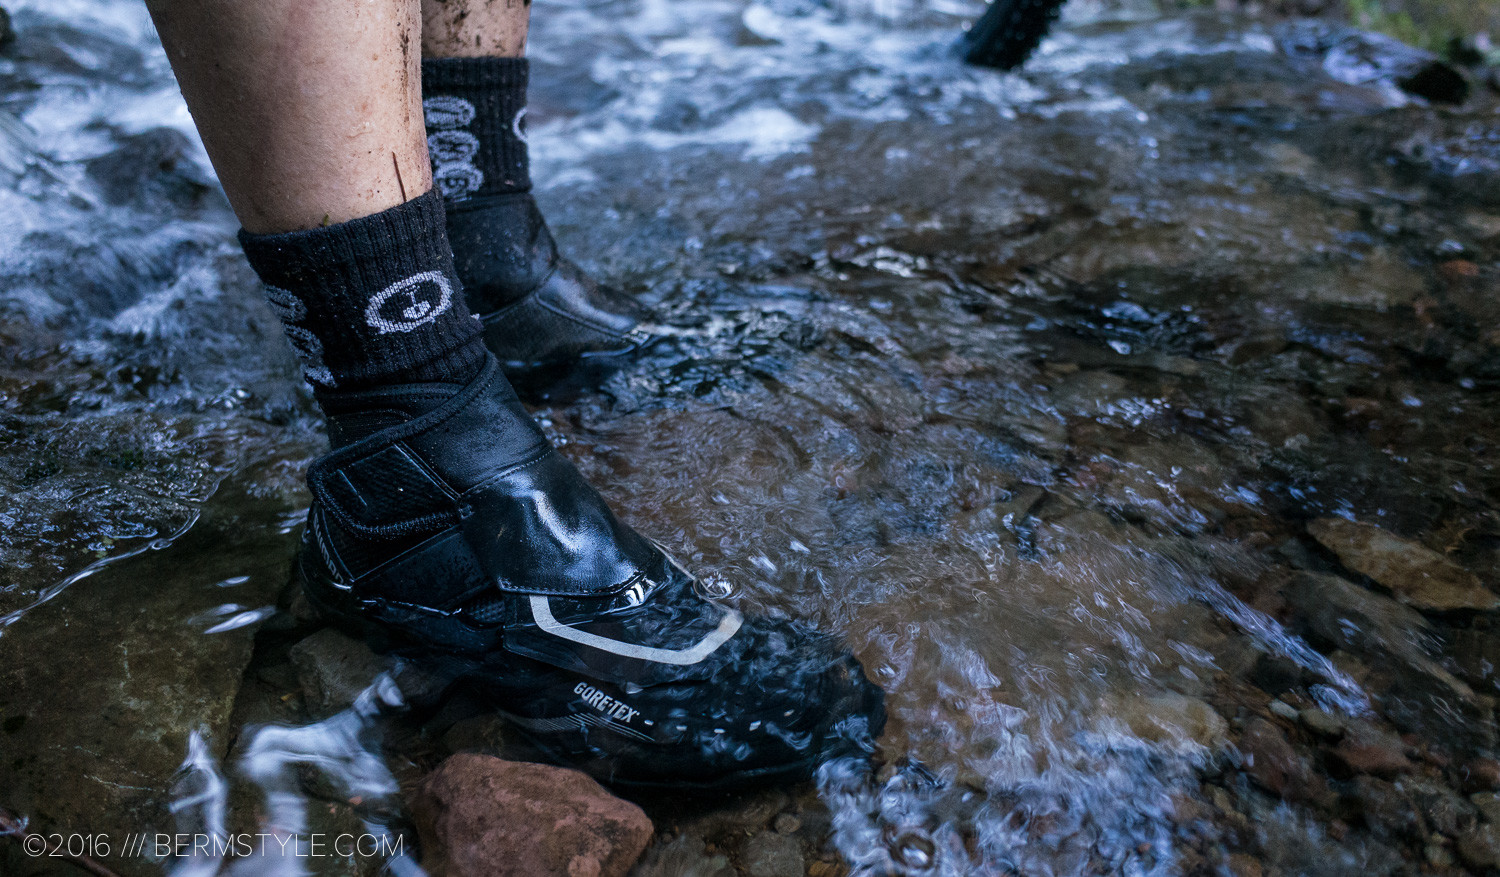 Review Shimano Mw7 Winter Shoes